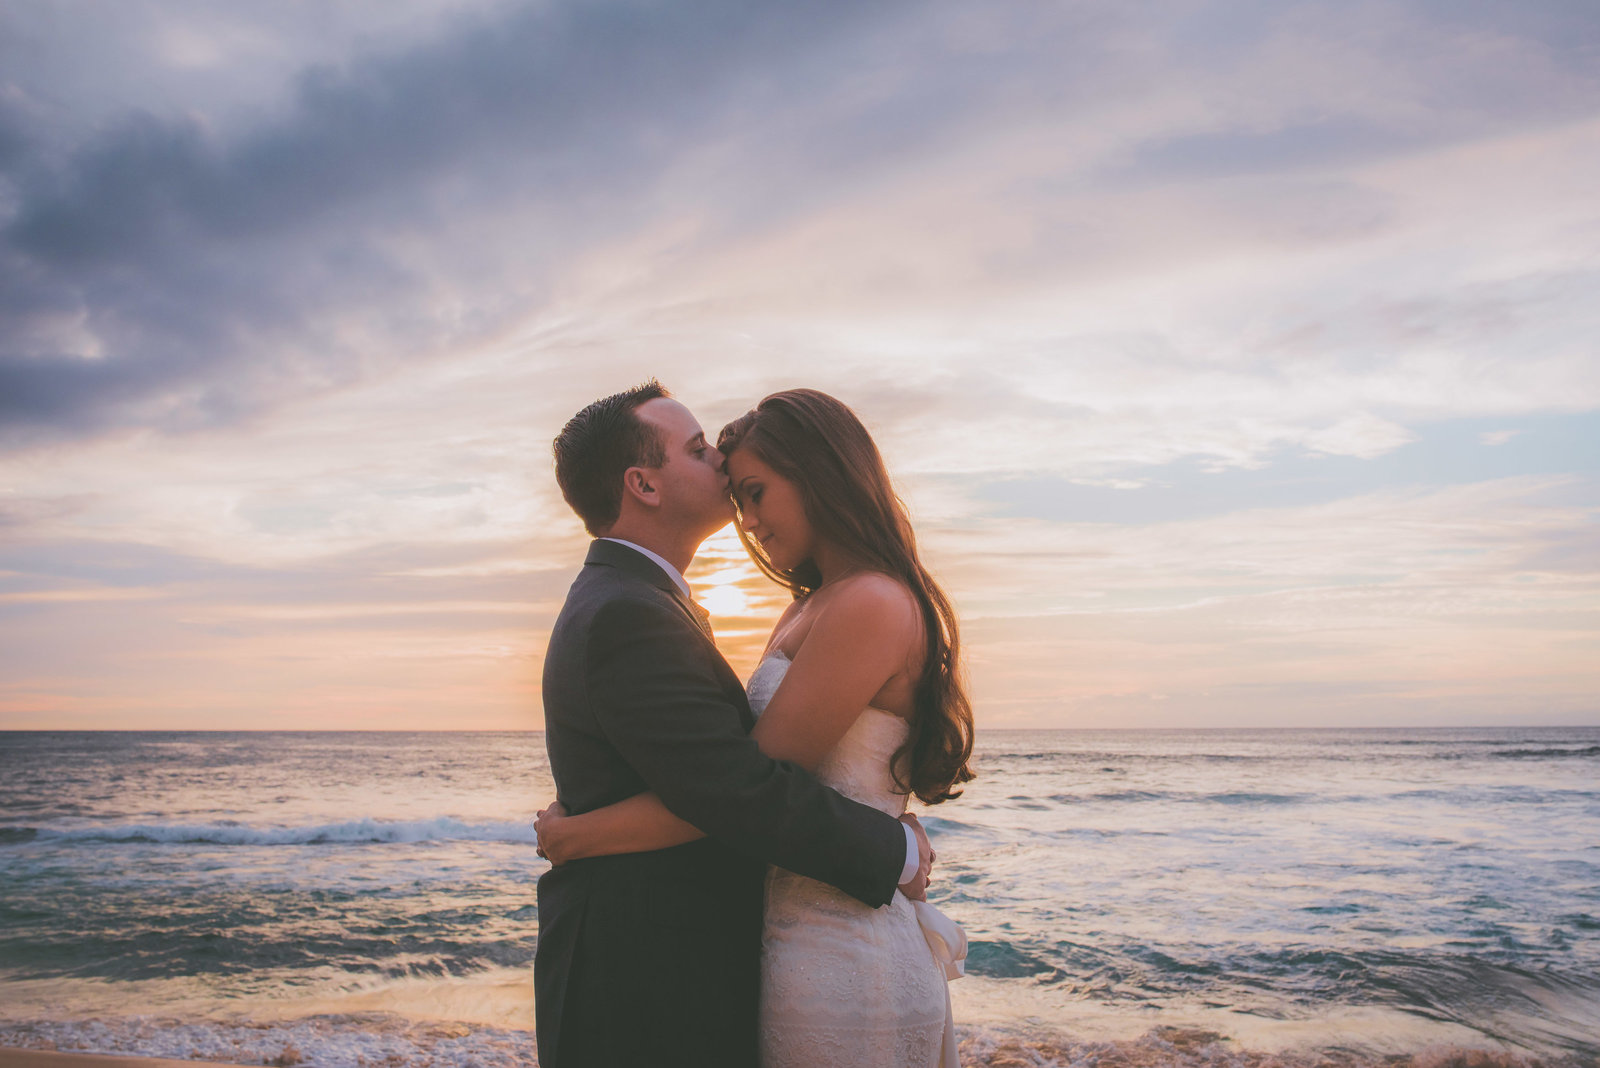 A groom kisses his bride's forehead during sunset on a Oahu beach.